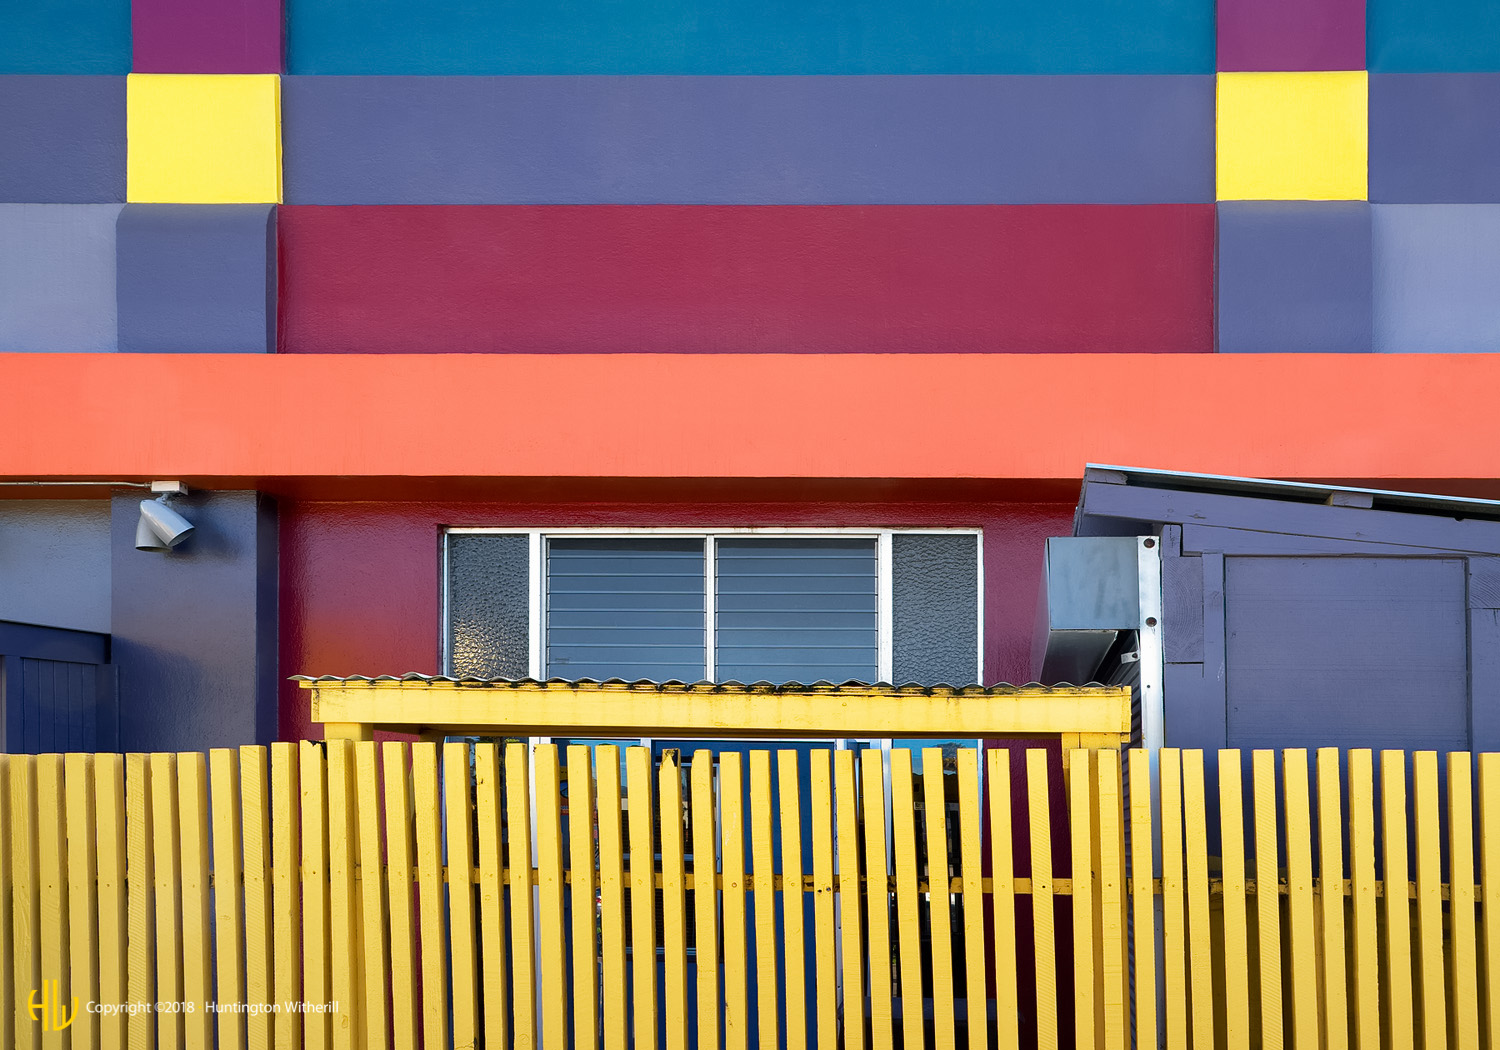 Yellow Fence, Santa Cruz, CA, 2014